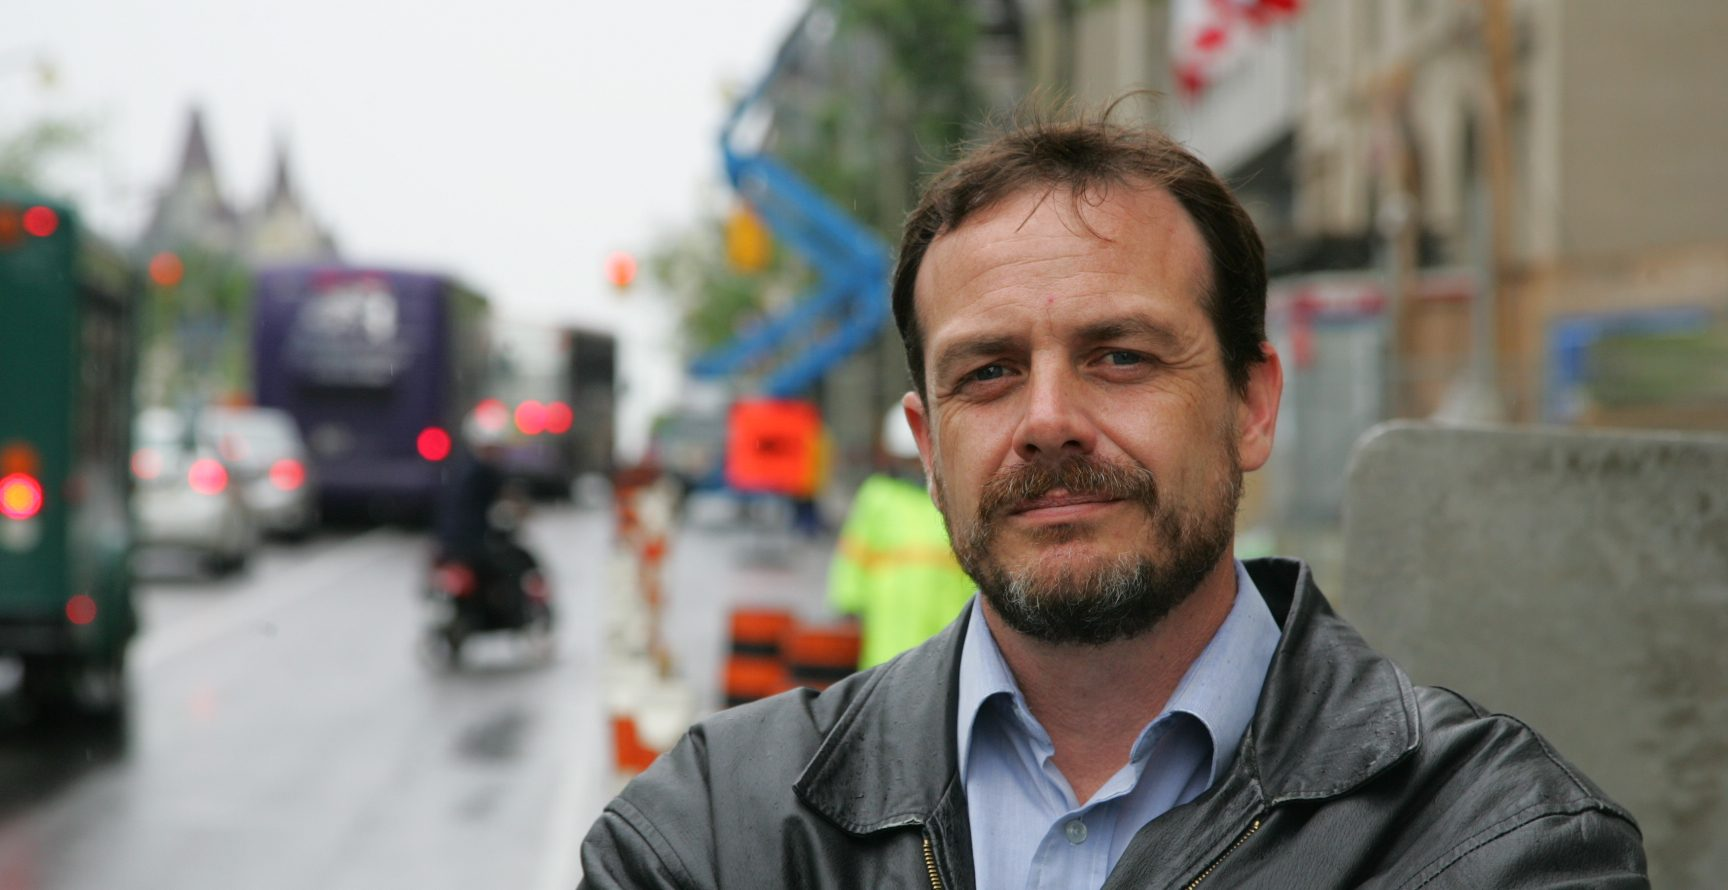 CBC Traffic Guy Doug Hempstead on Split Shifts, Sinkholes, and Making Music as Area Resident